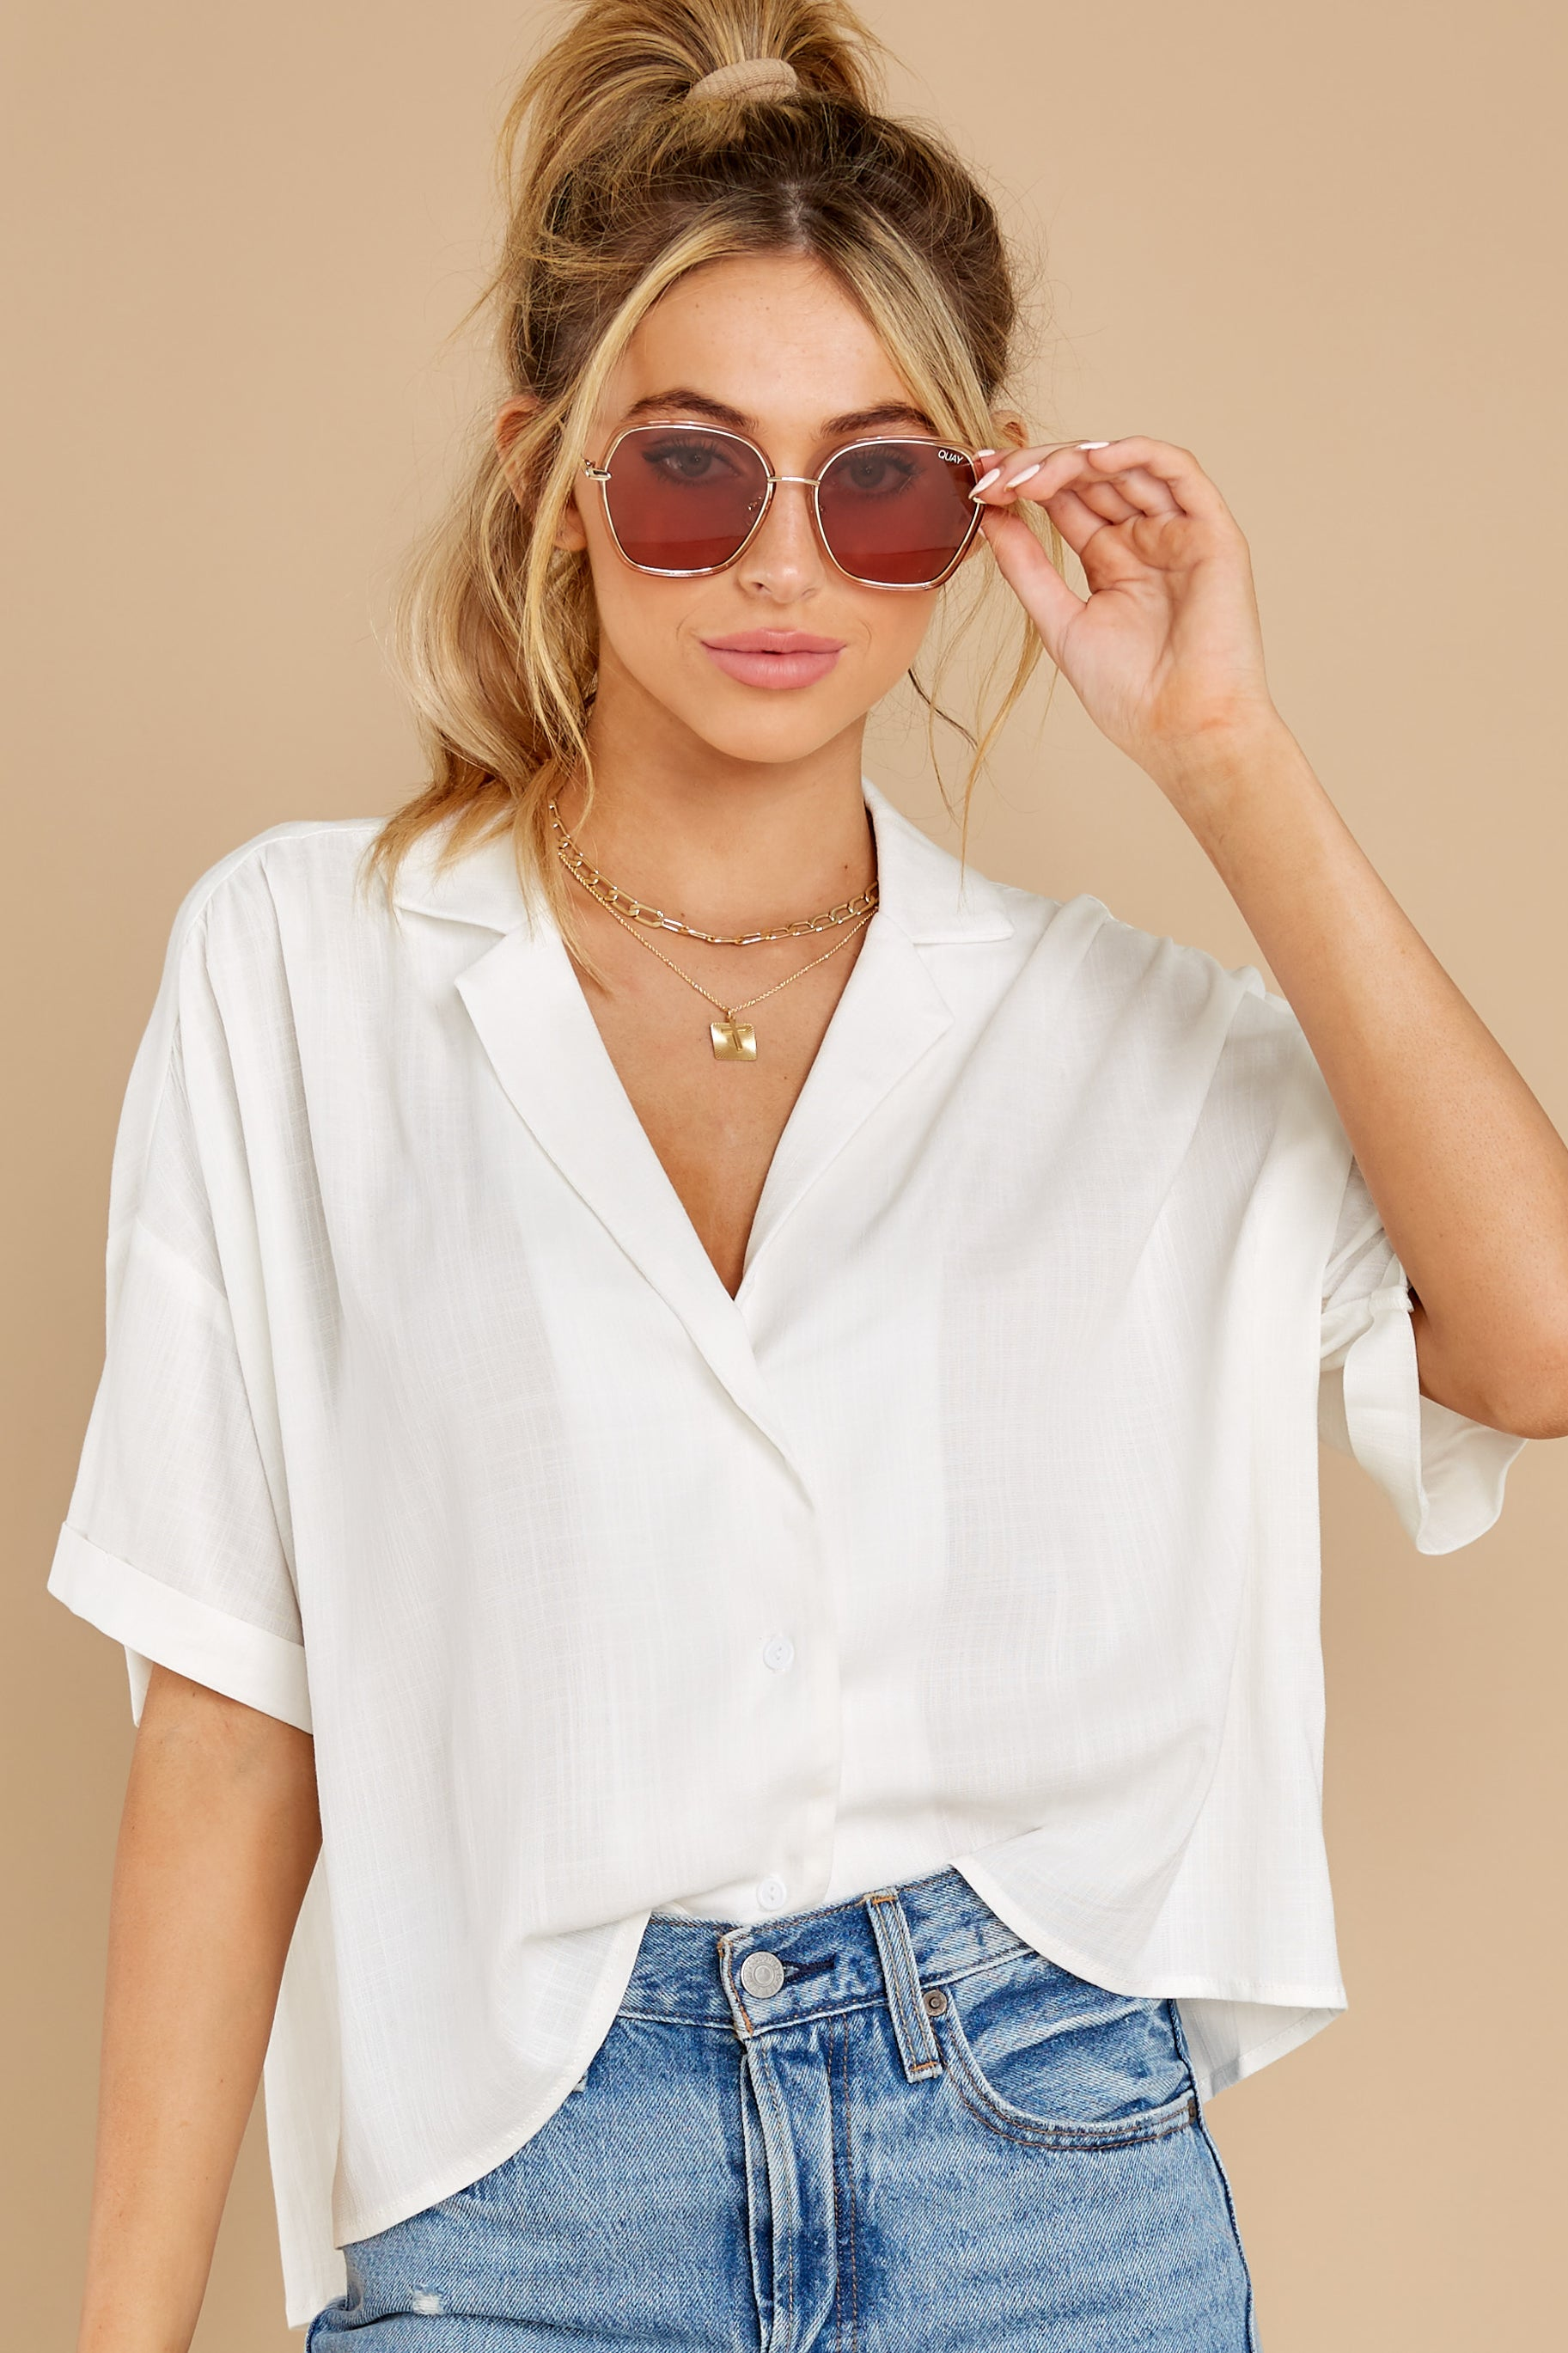 4 Love On You White Top at reddress.com